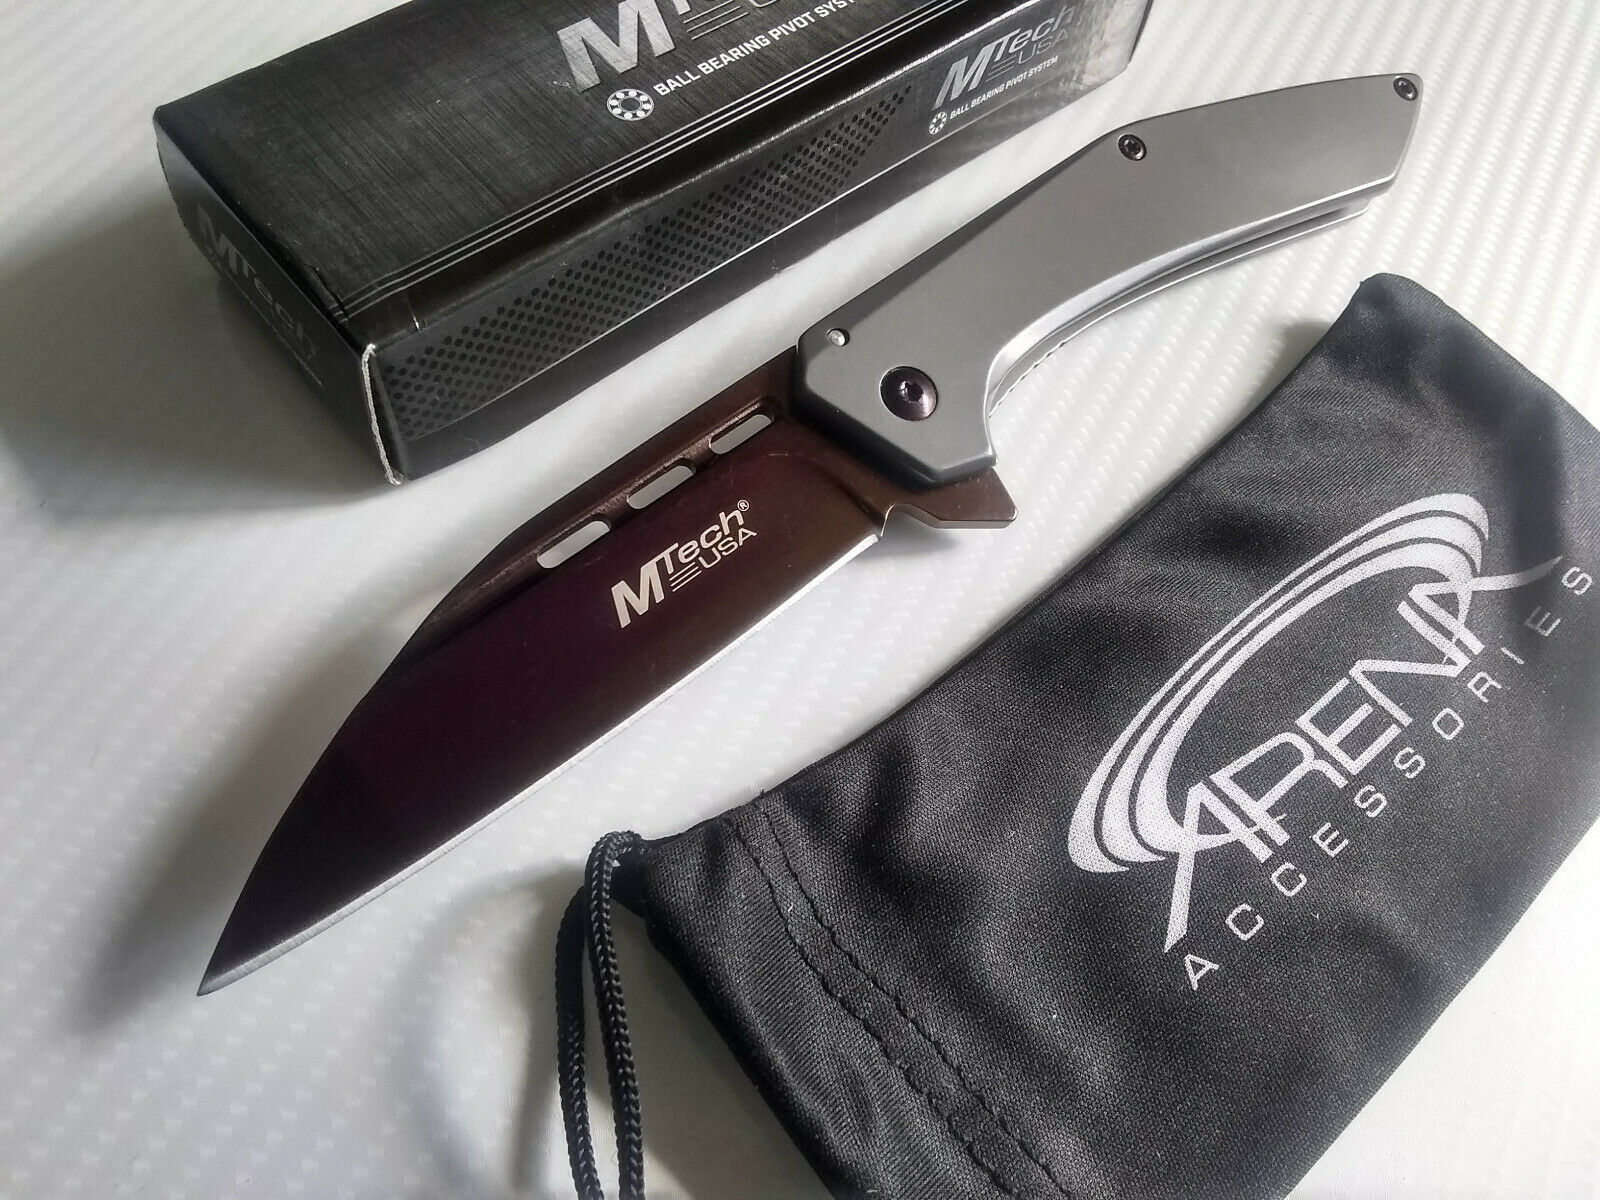 MTech Purple Ti Wharncliffe Ball Bearing Pivot Manual Open Pocket Knife Frame Lock EDC